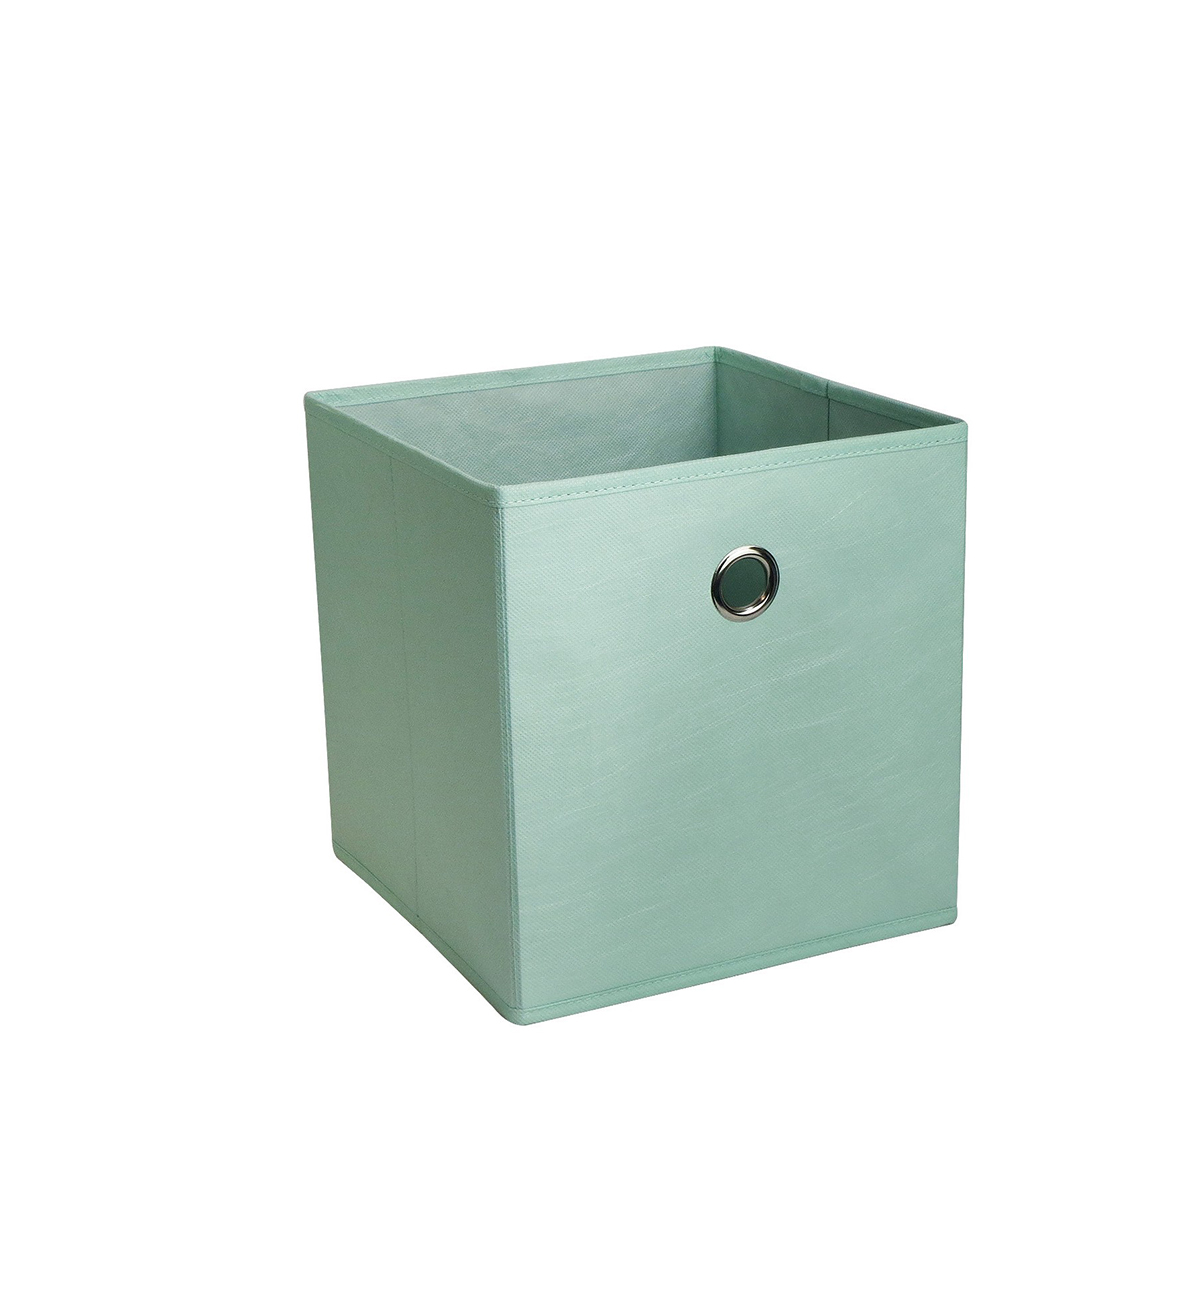 Dorm Room Decor Mint Storage Bin